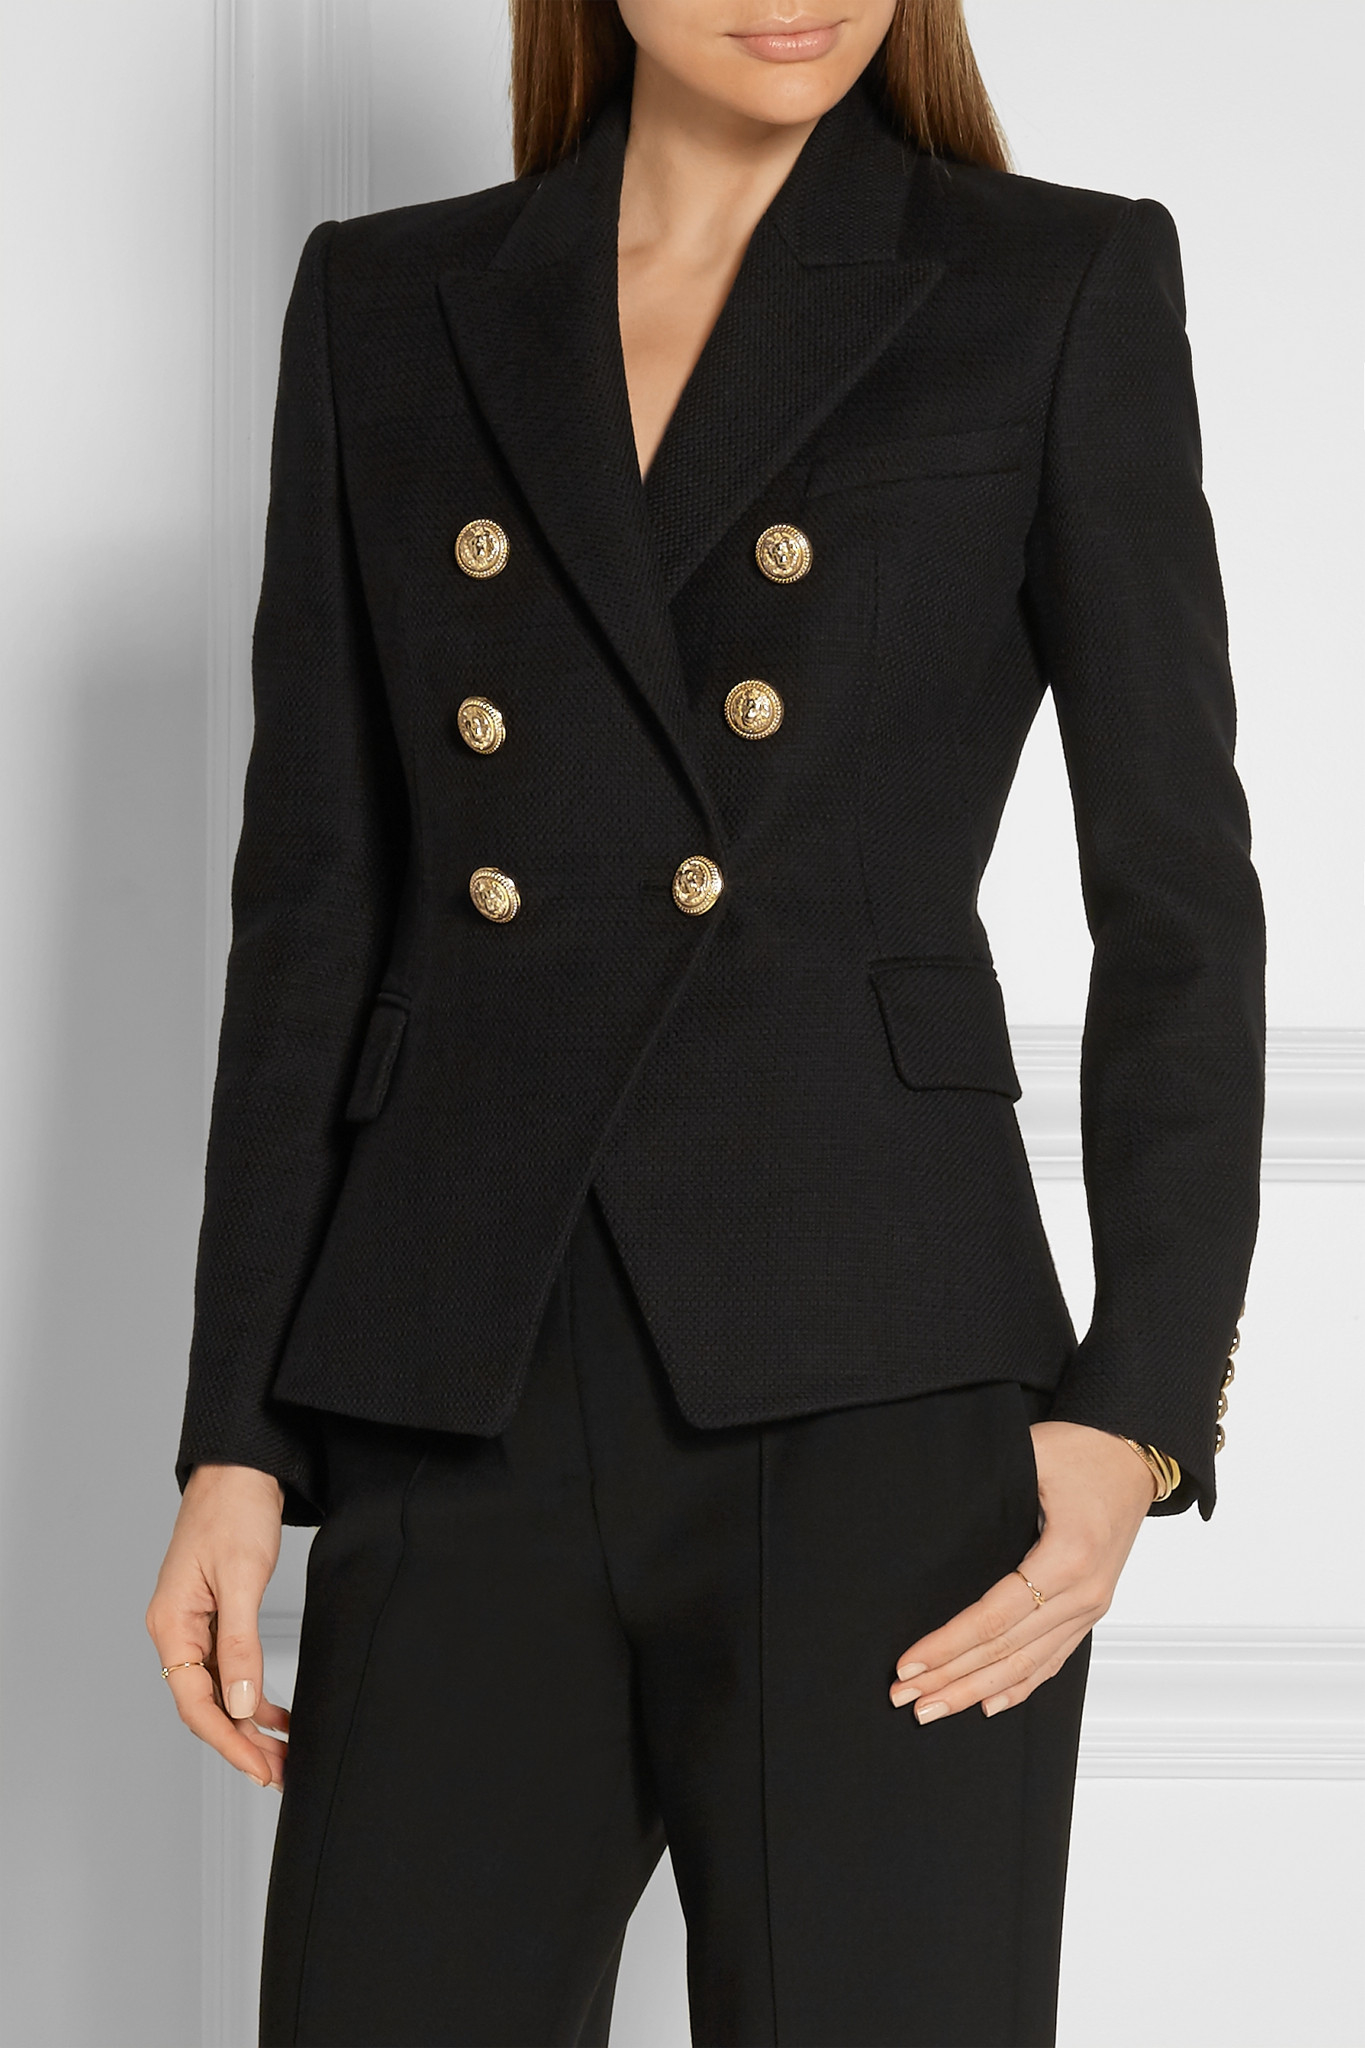 Balmain Jacket Womens | White Blazer Gold Buttons | Balmain Double Breasted Blazer